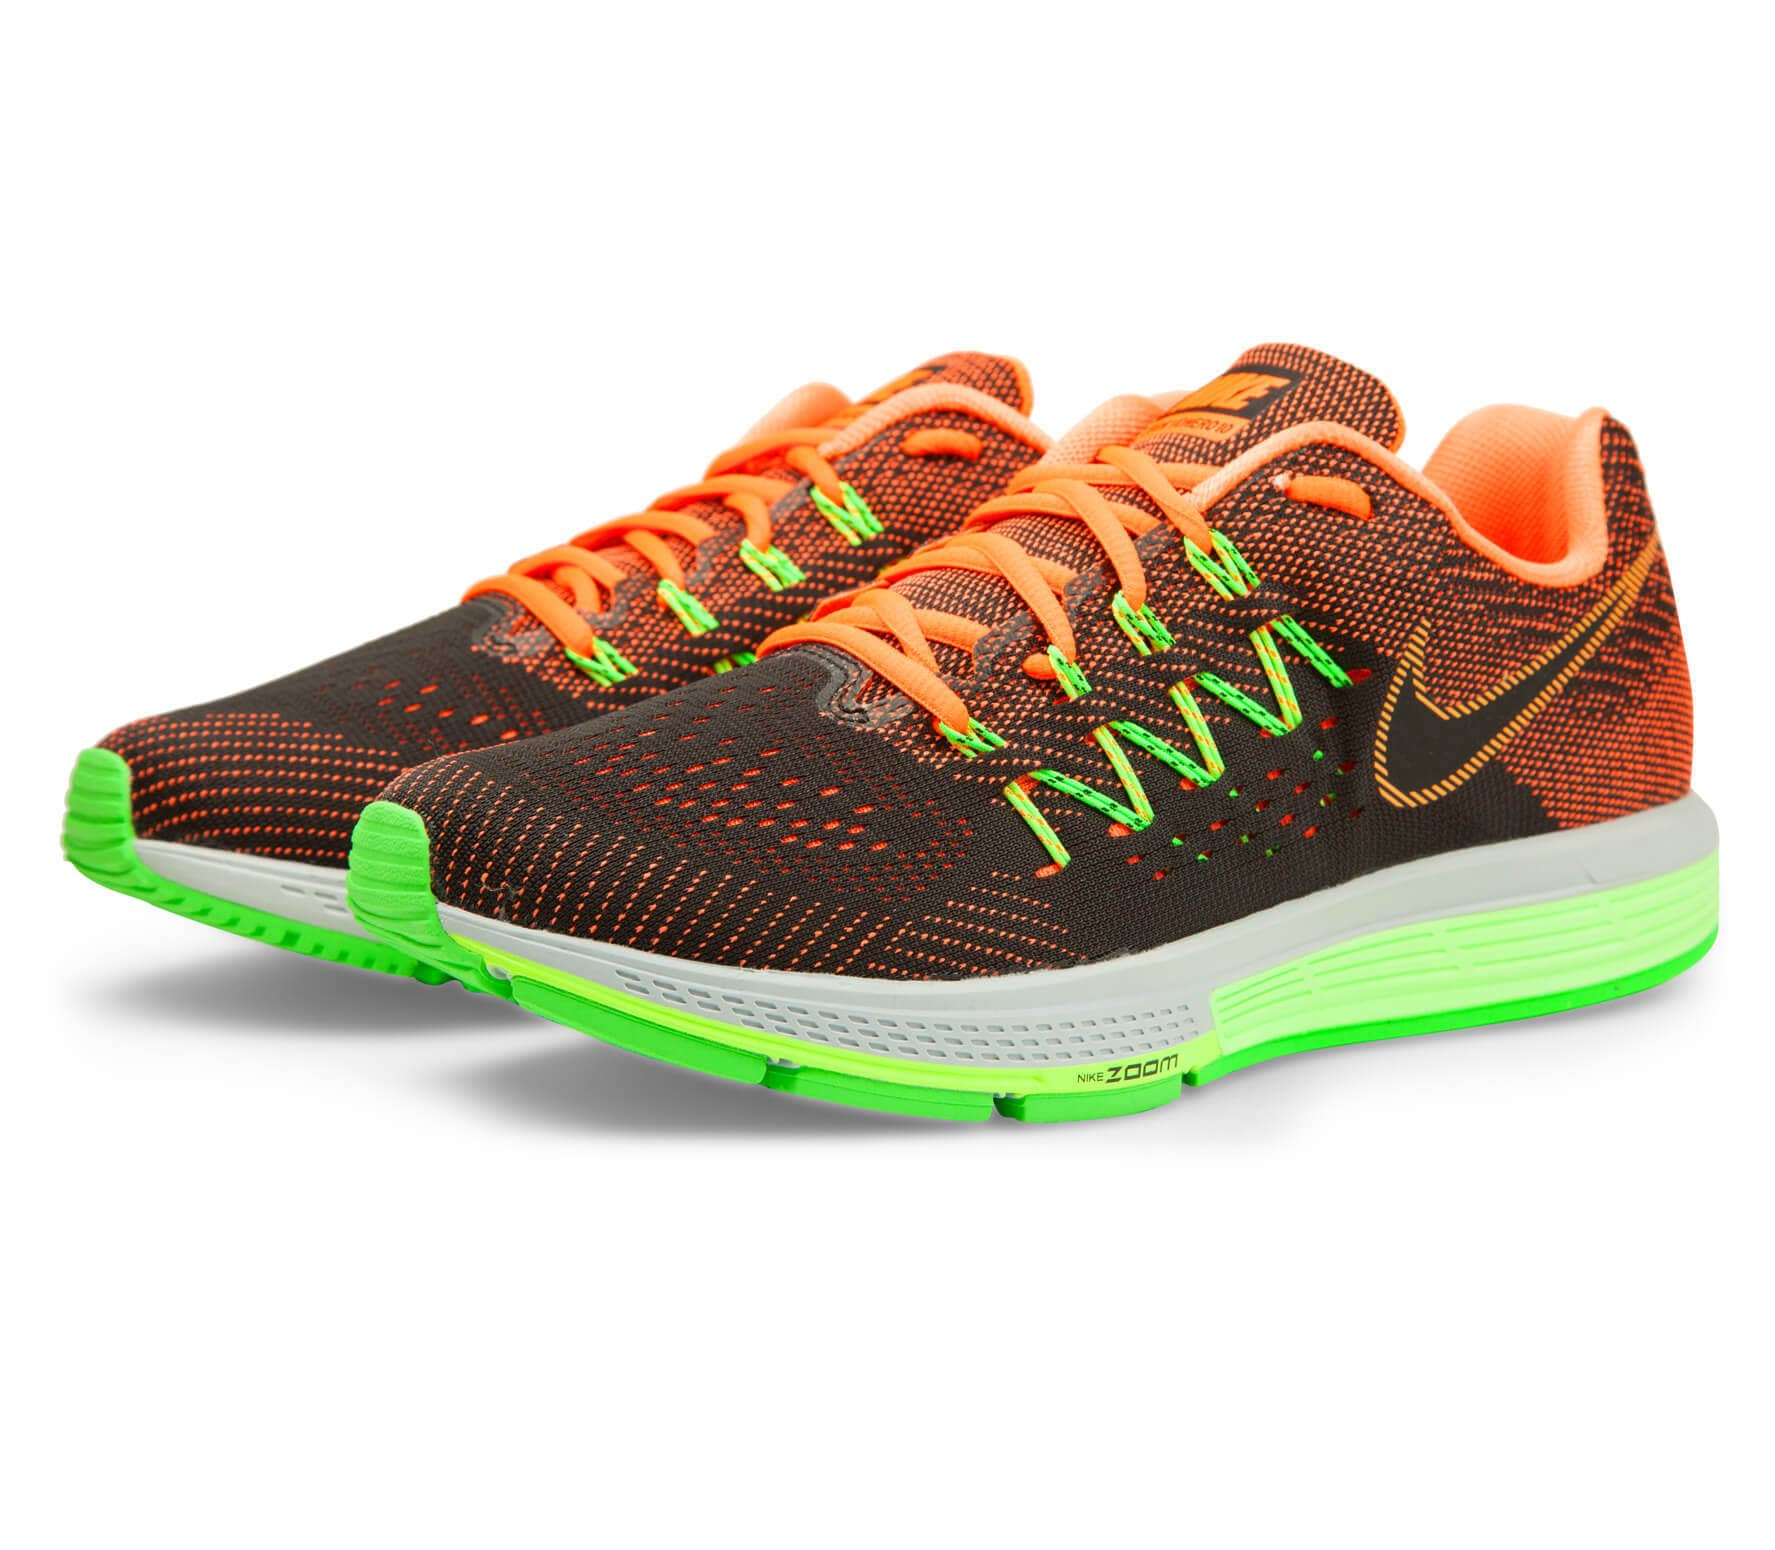 pretty nice 1dba9 c741f Nike - Air Zoom Vomero 10 men s running shoes (green orange)